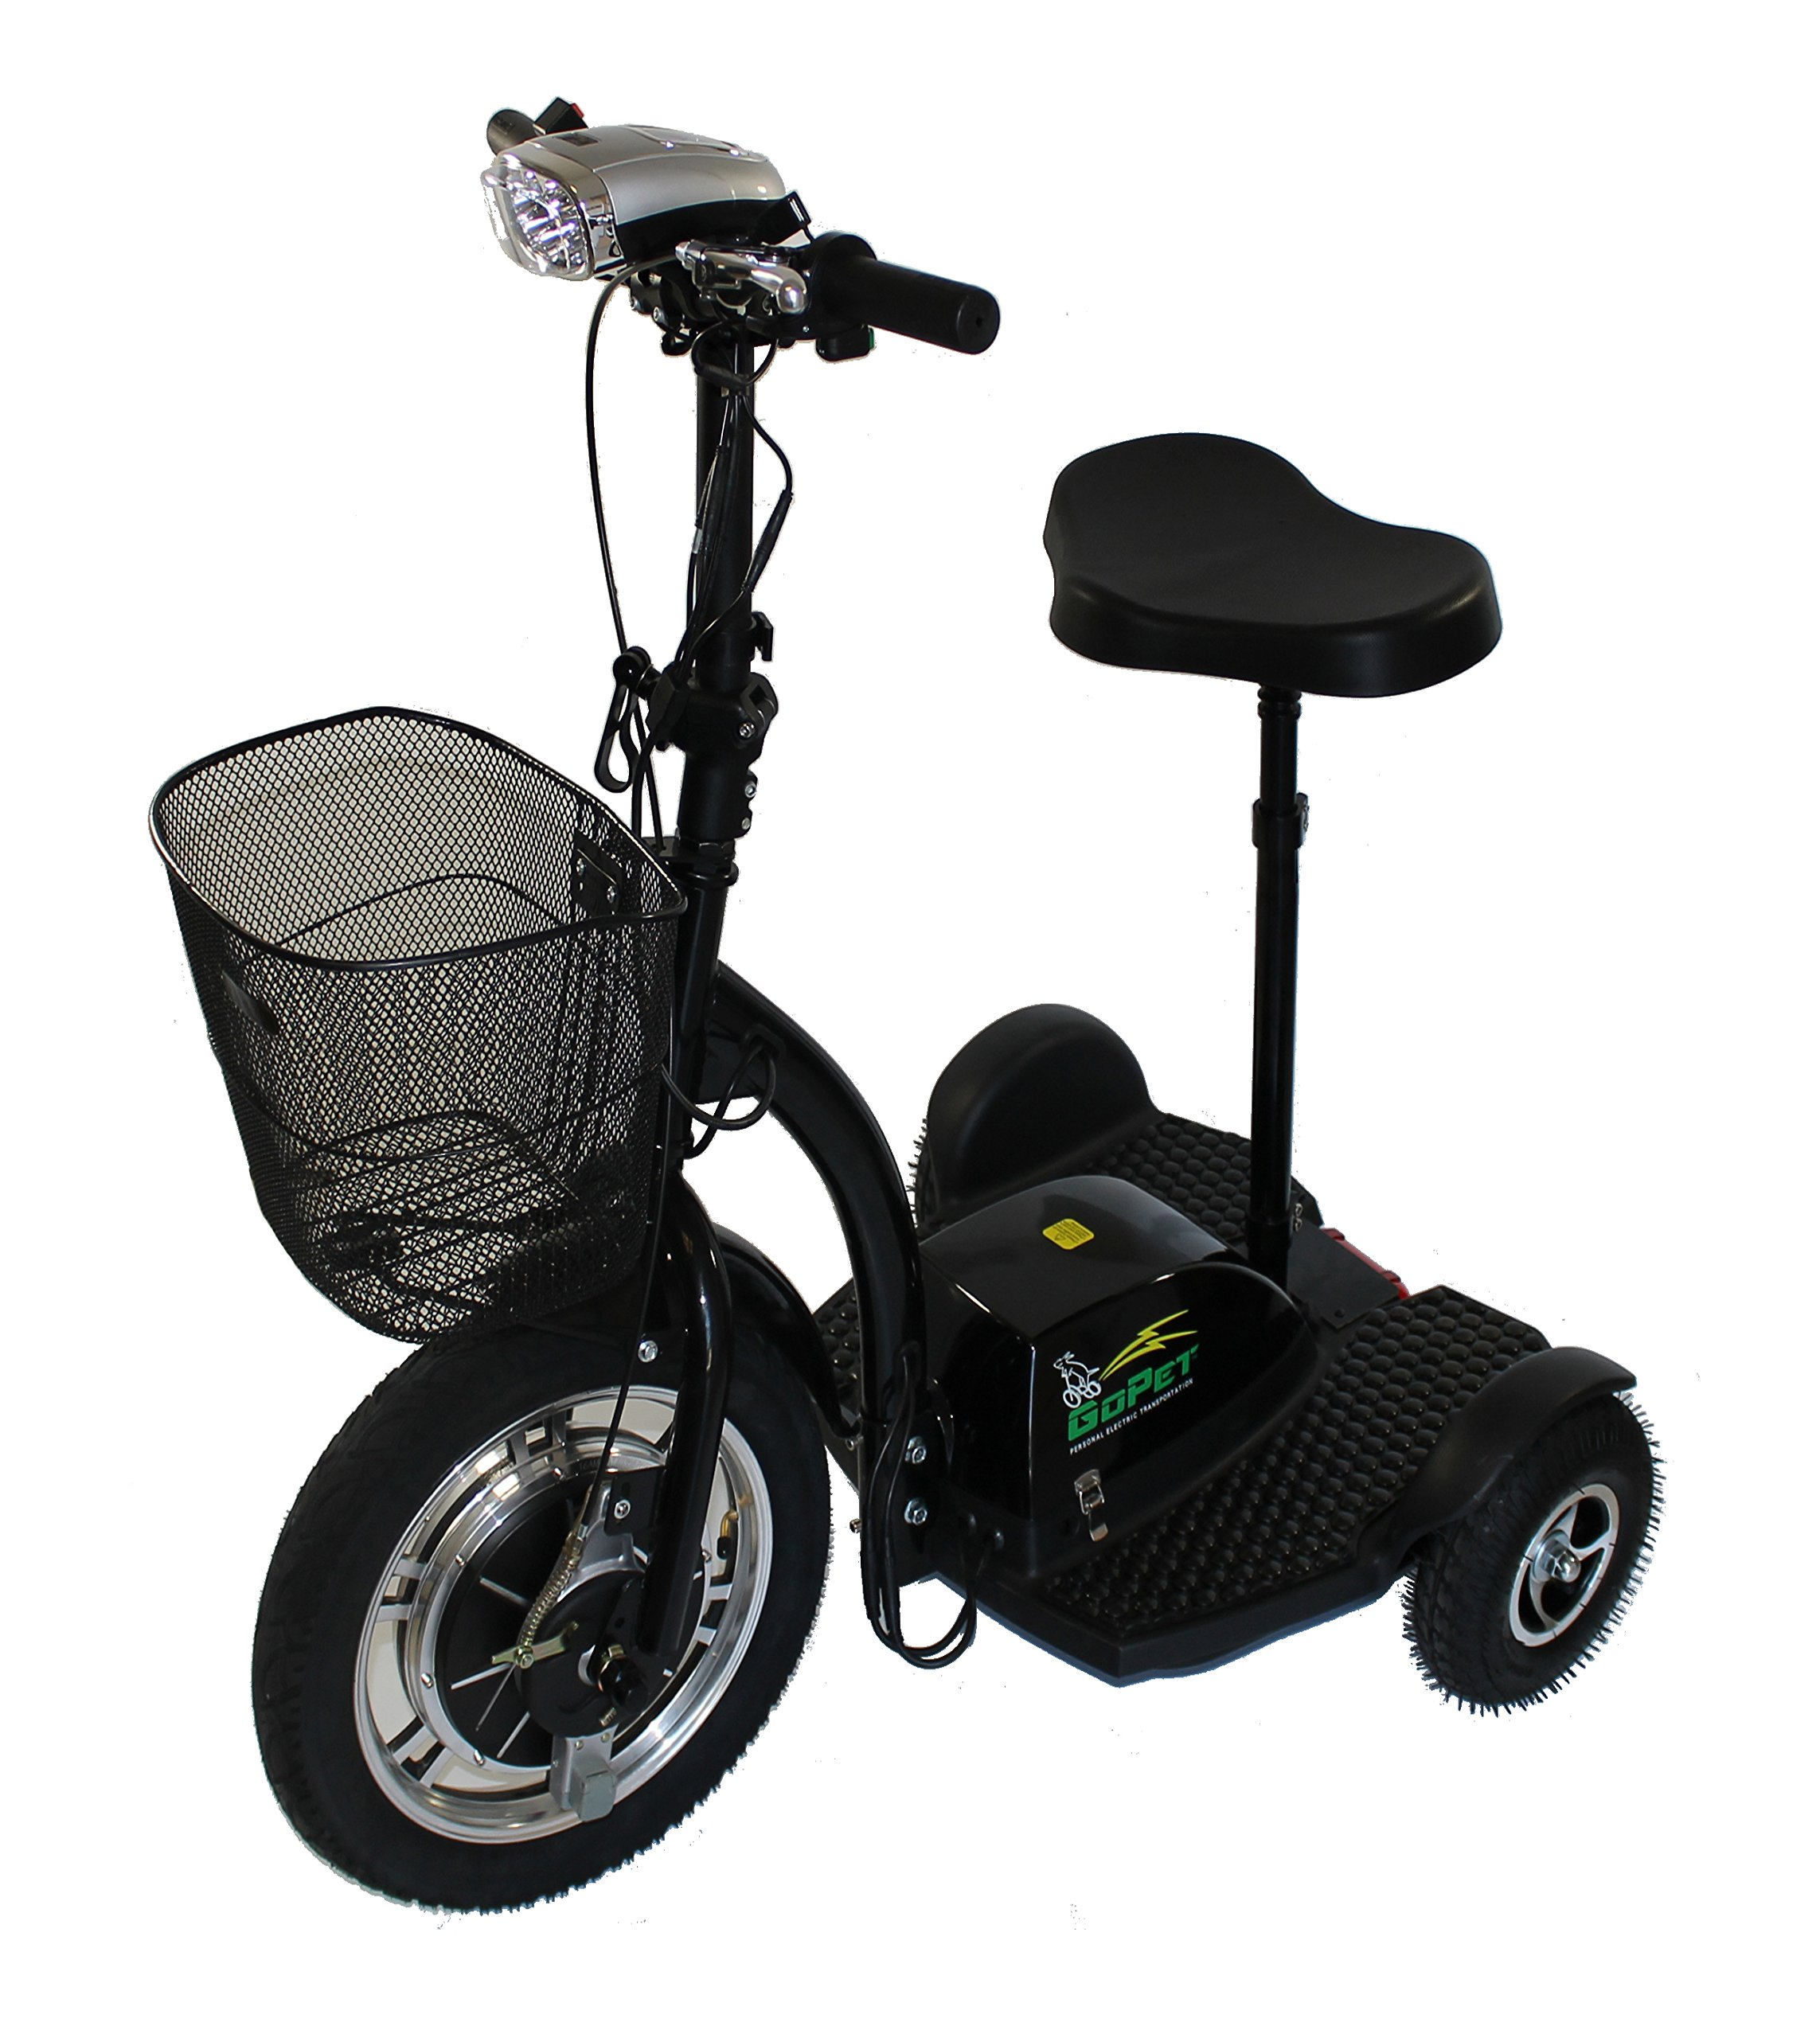 GoPET PET-RL-B Electric Scooter, ADA Compliant, 350W Motor, 48V Lithium Ion Battery, Sealed Dry Cell, Seat and USB Port, 350 lb. Standing Capacity, 400 lb. Towing Capacity, 27'' x 44'' x 47'', Black